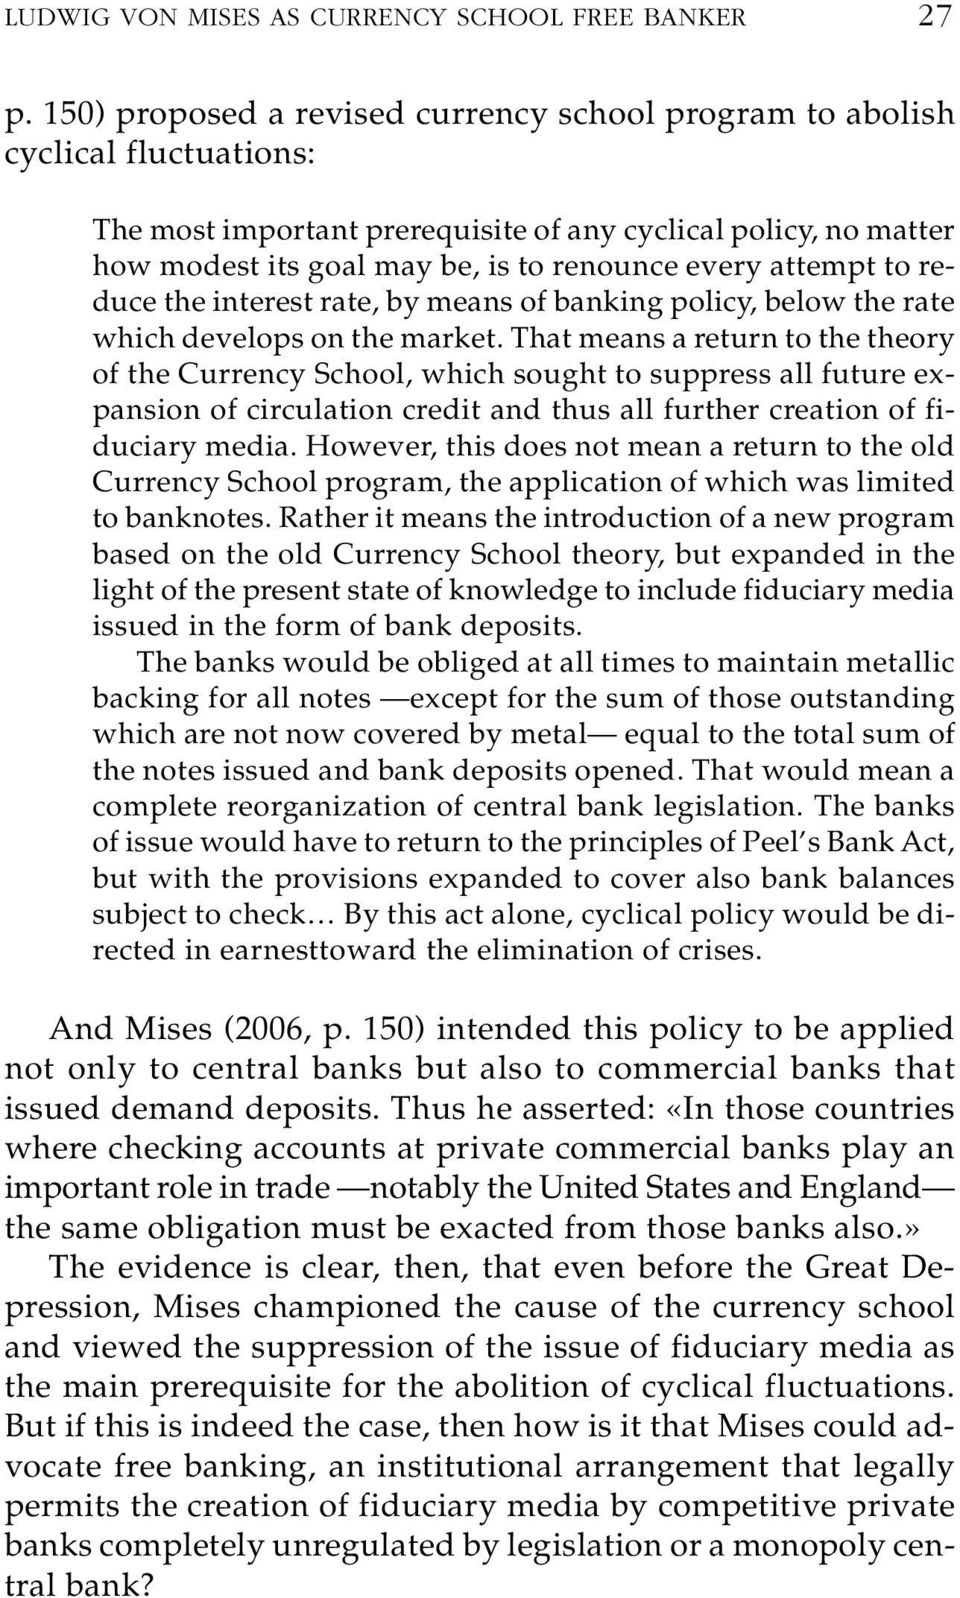 attempt to re - duce the interest rate, by means of banking policy, below the rate which develops on the market.